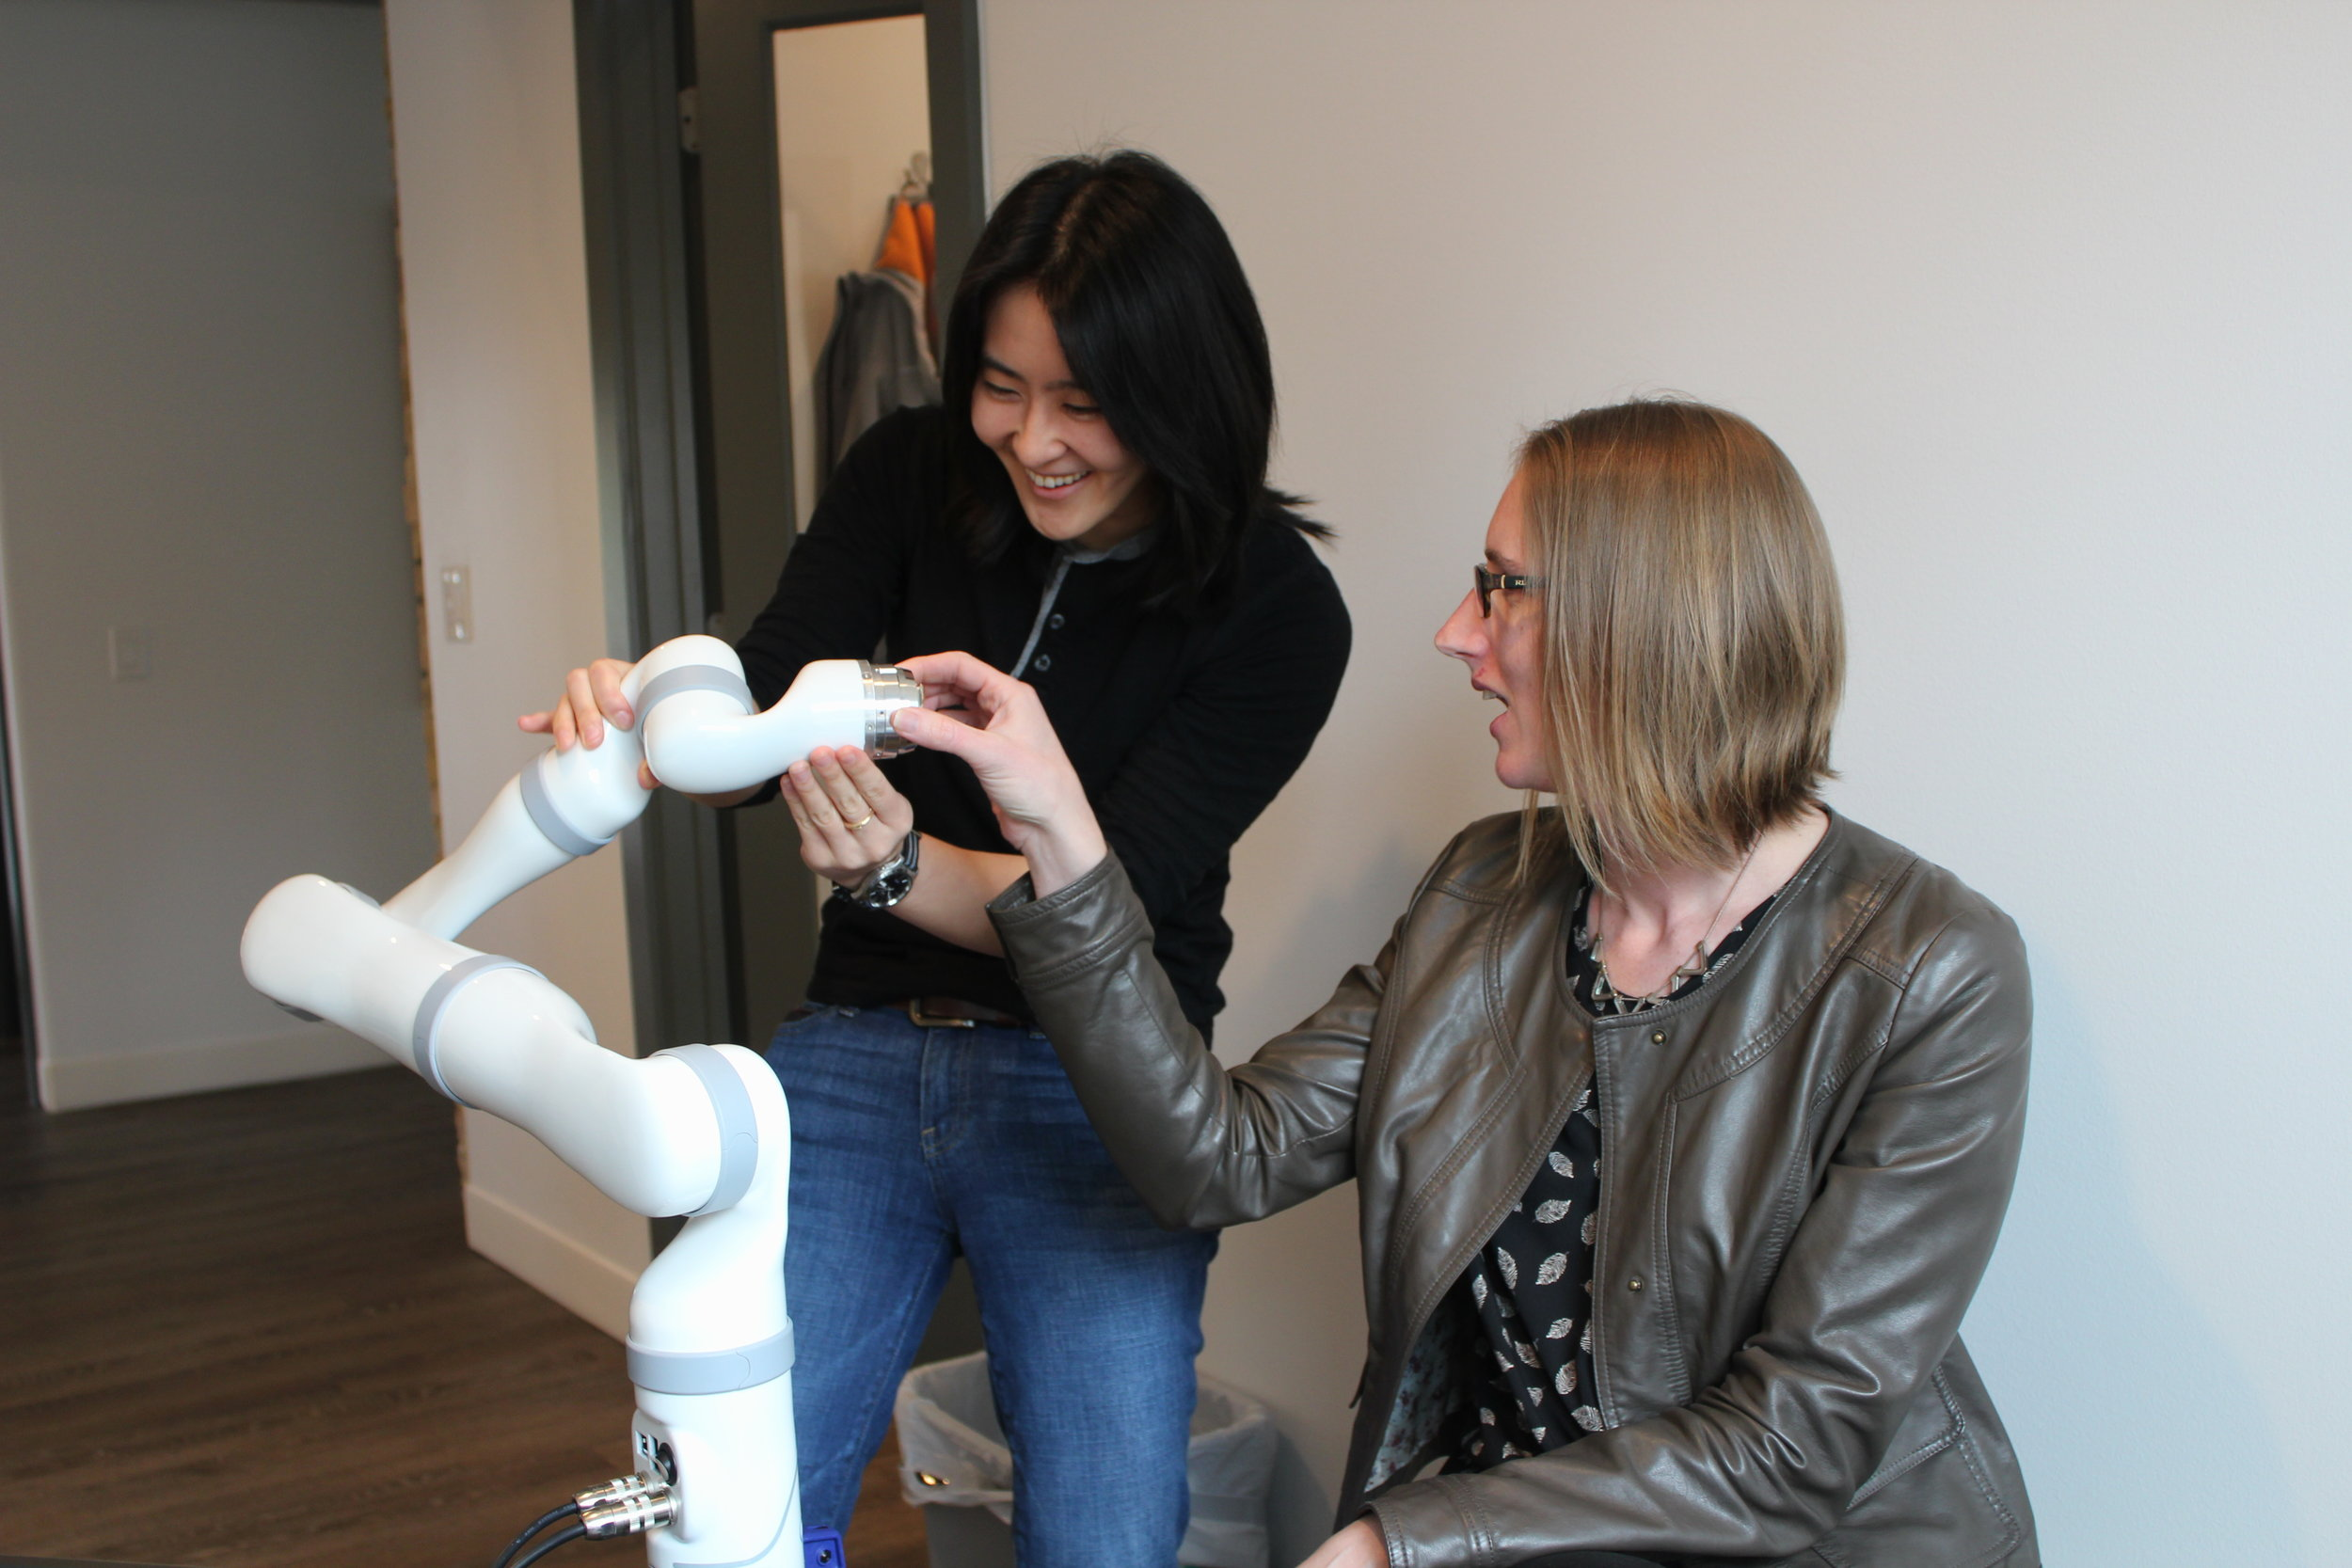 Diligent Robotics Co-Founders Vivian Chu (left) and Andrea Thomaz (right) with their original arm prototype for Moxi in NCV's offices.